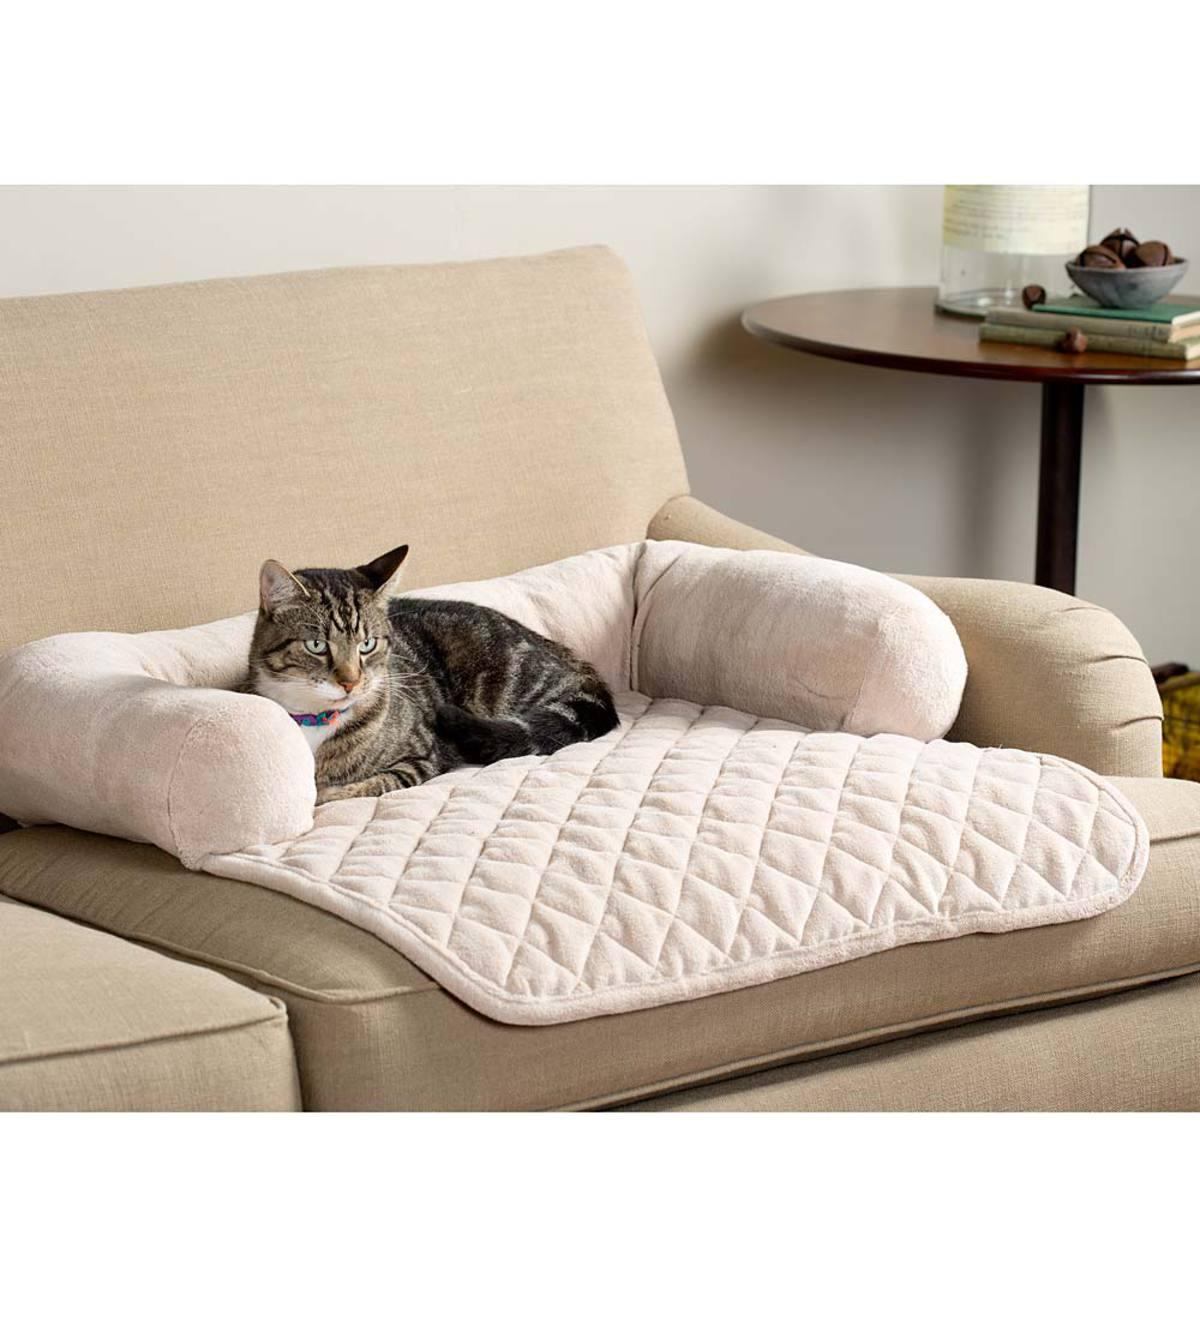 Sofa Bolster Pillow Furniture Cover For Pets Chocolate